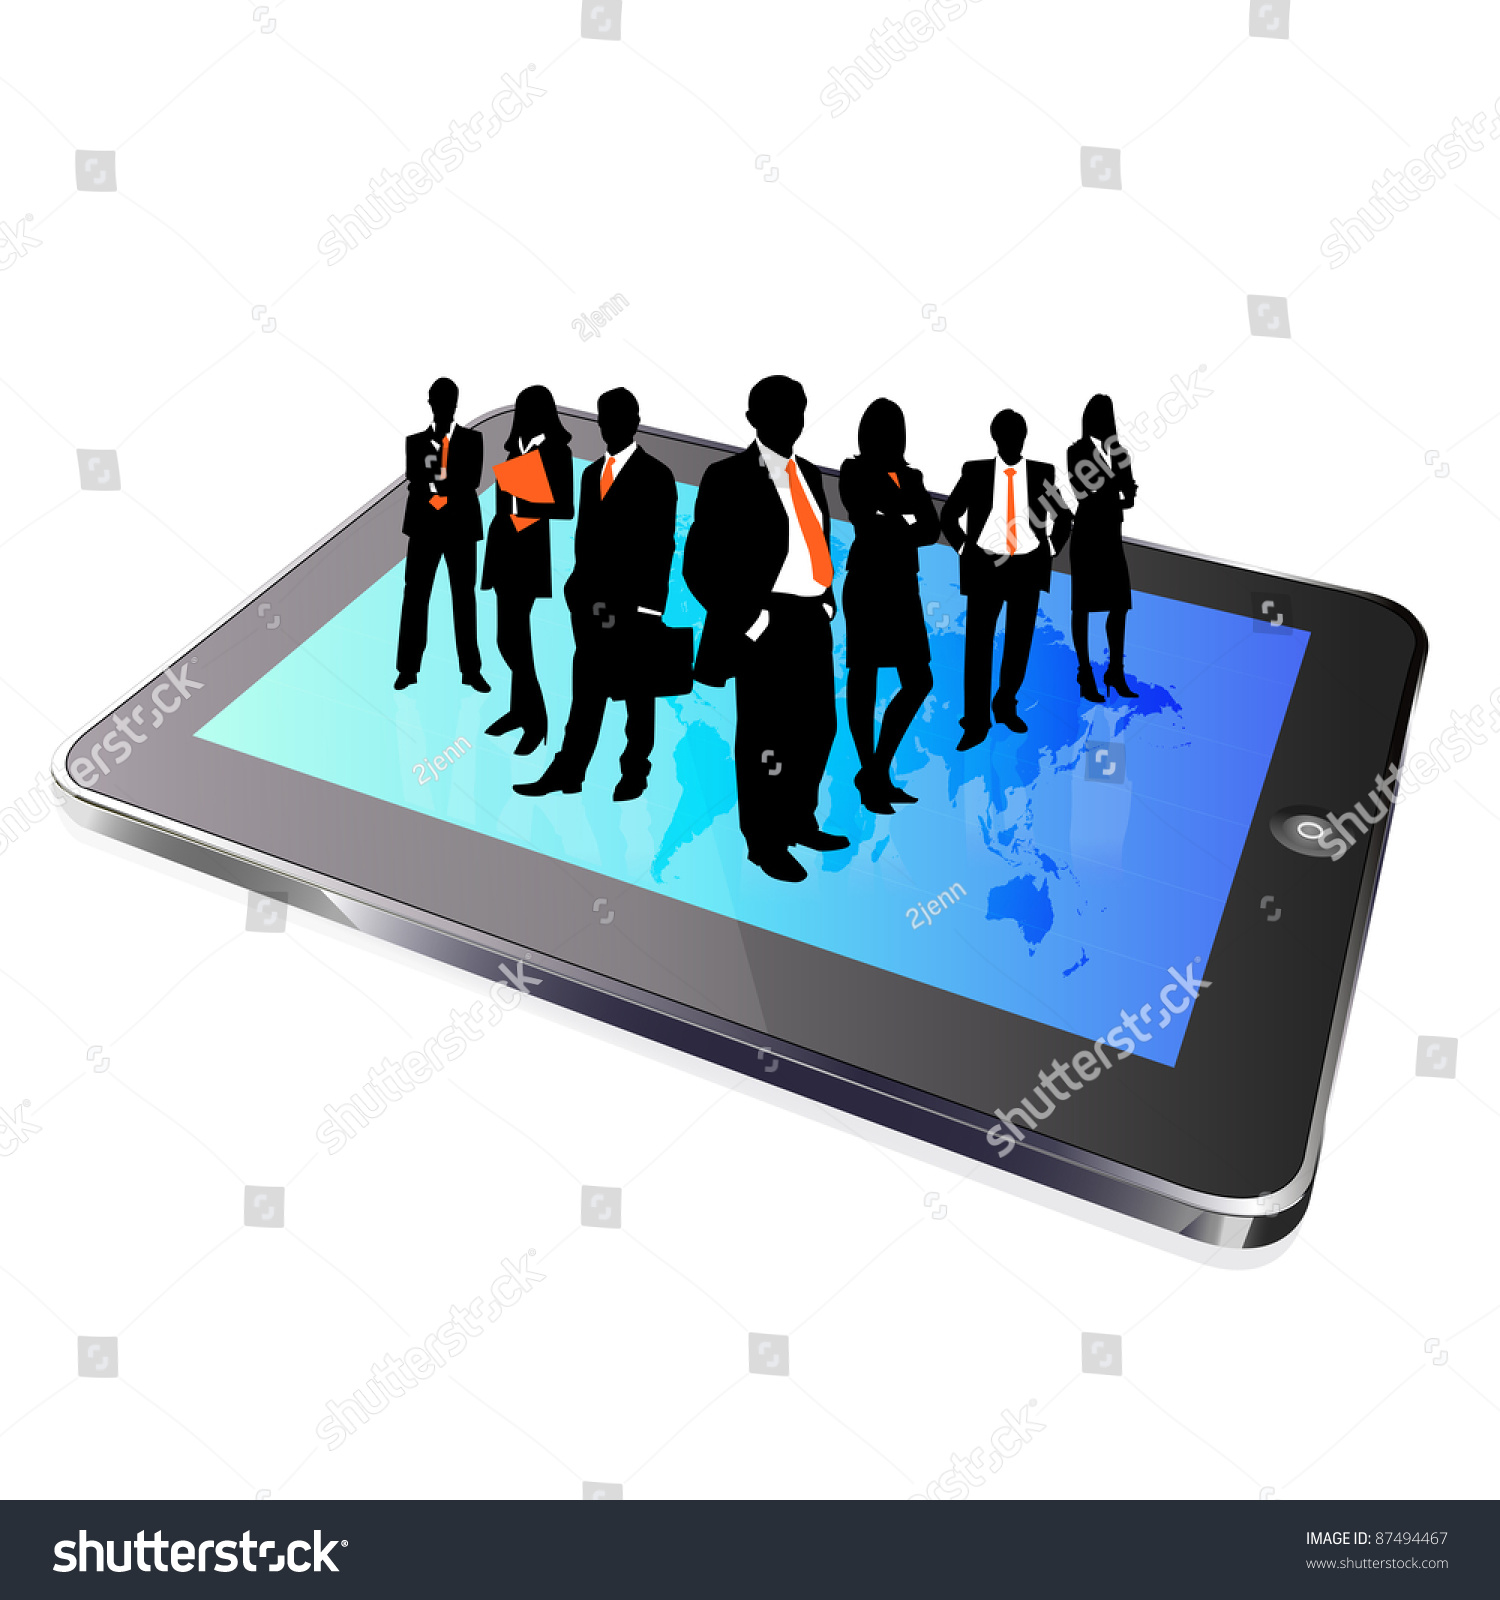 Tablet Business Group Silhouette Stock Photo 87494467 ...